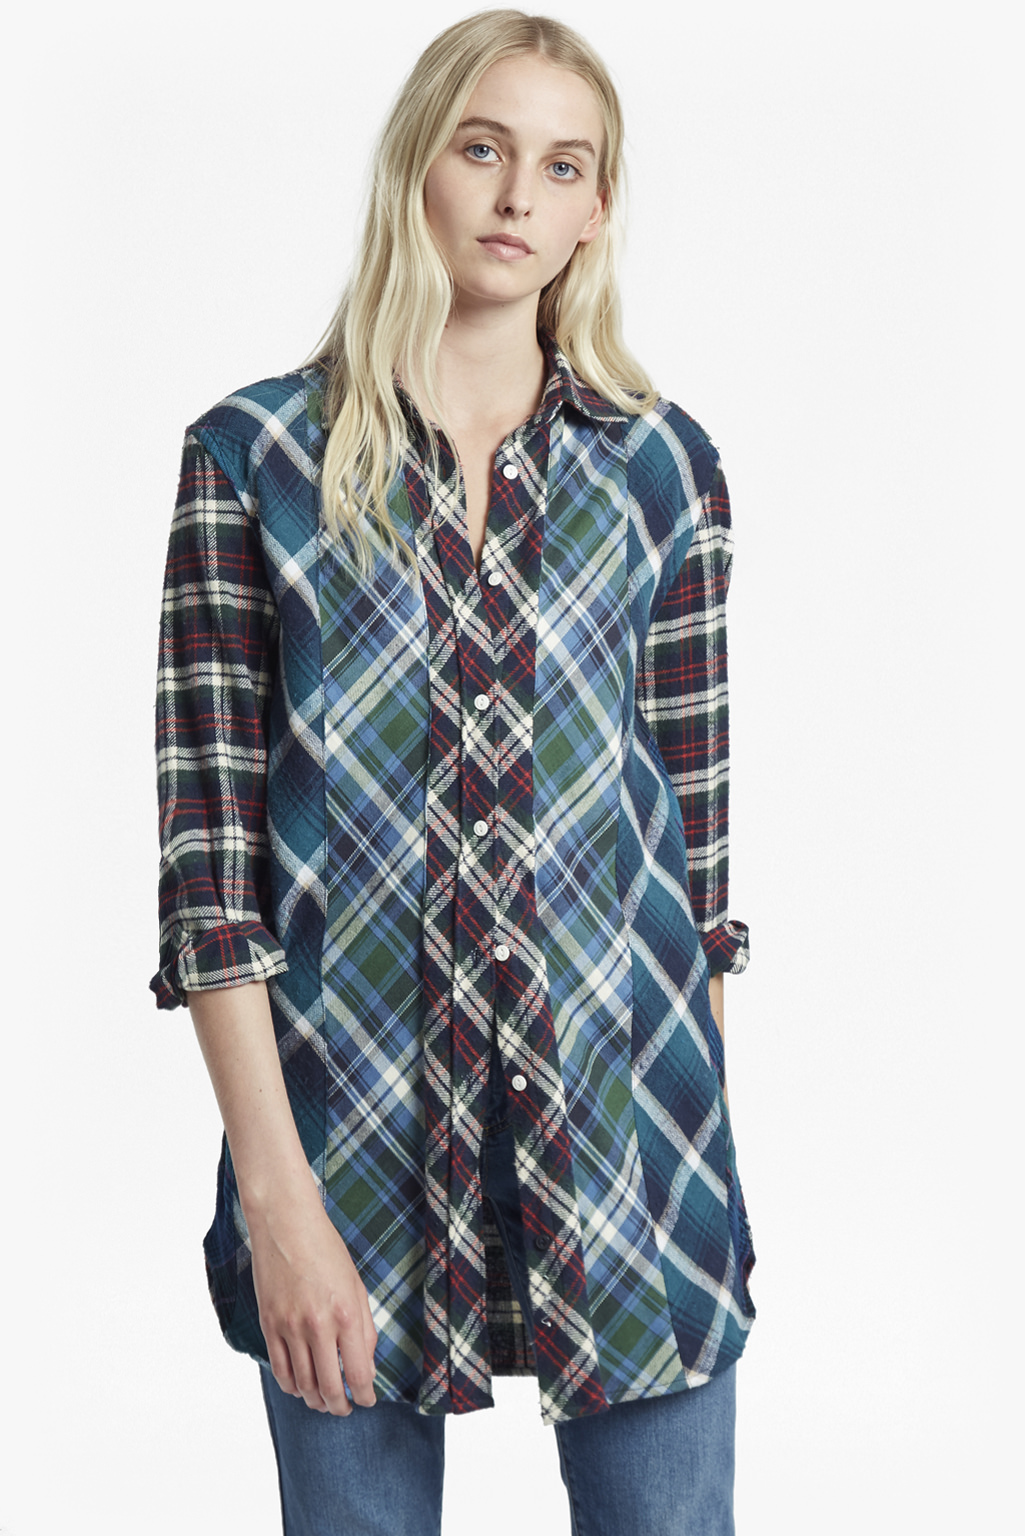 French Connection Patchwork Flannel Checked Shirt Sale Shop Offer Big Discount Cheap Online Discounts For Sale 2018 New Cheap Online Quality 3ApP3